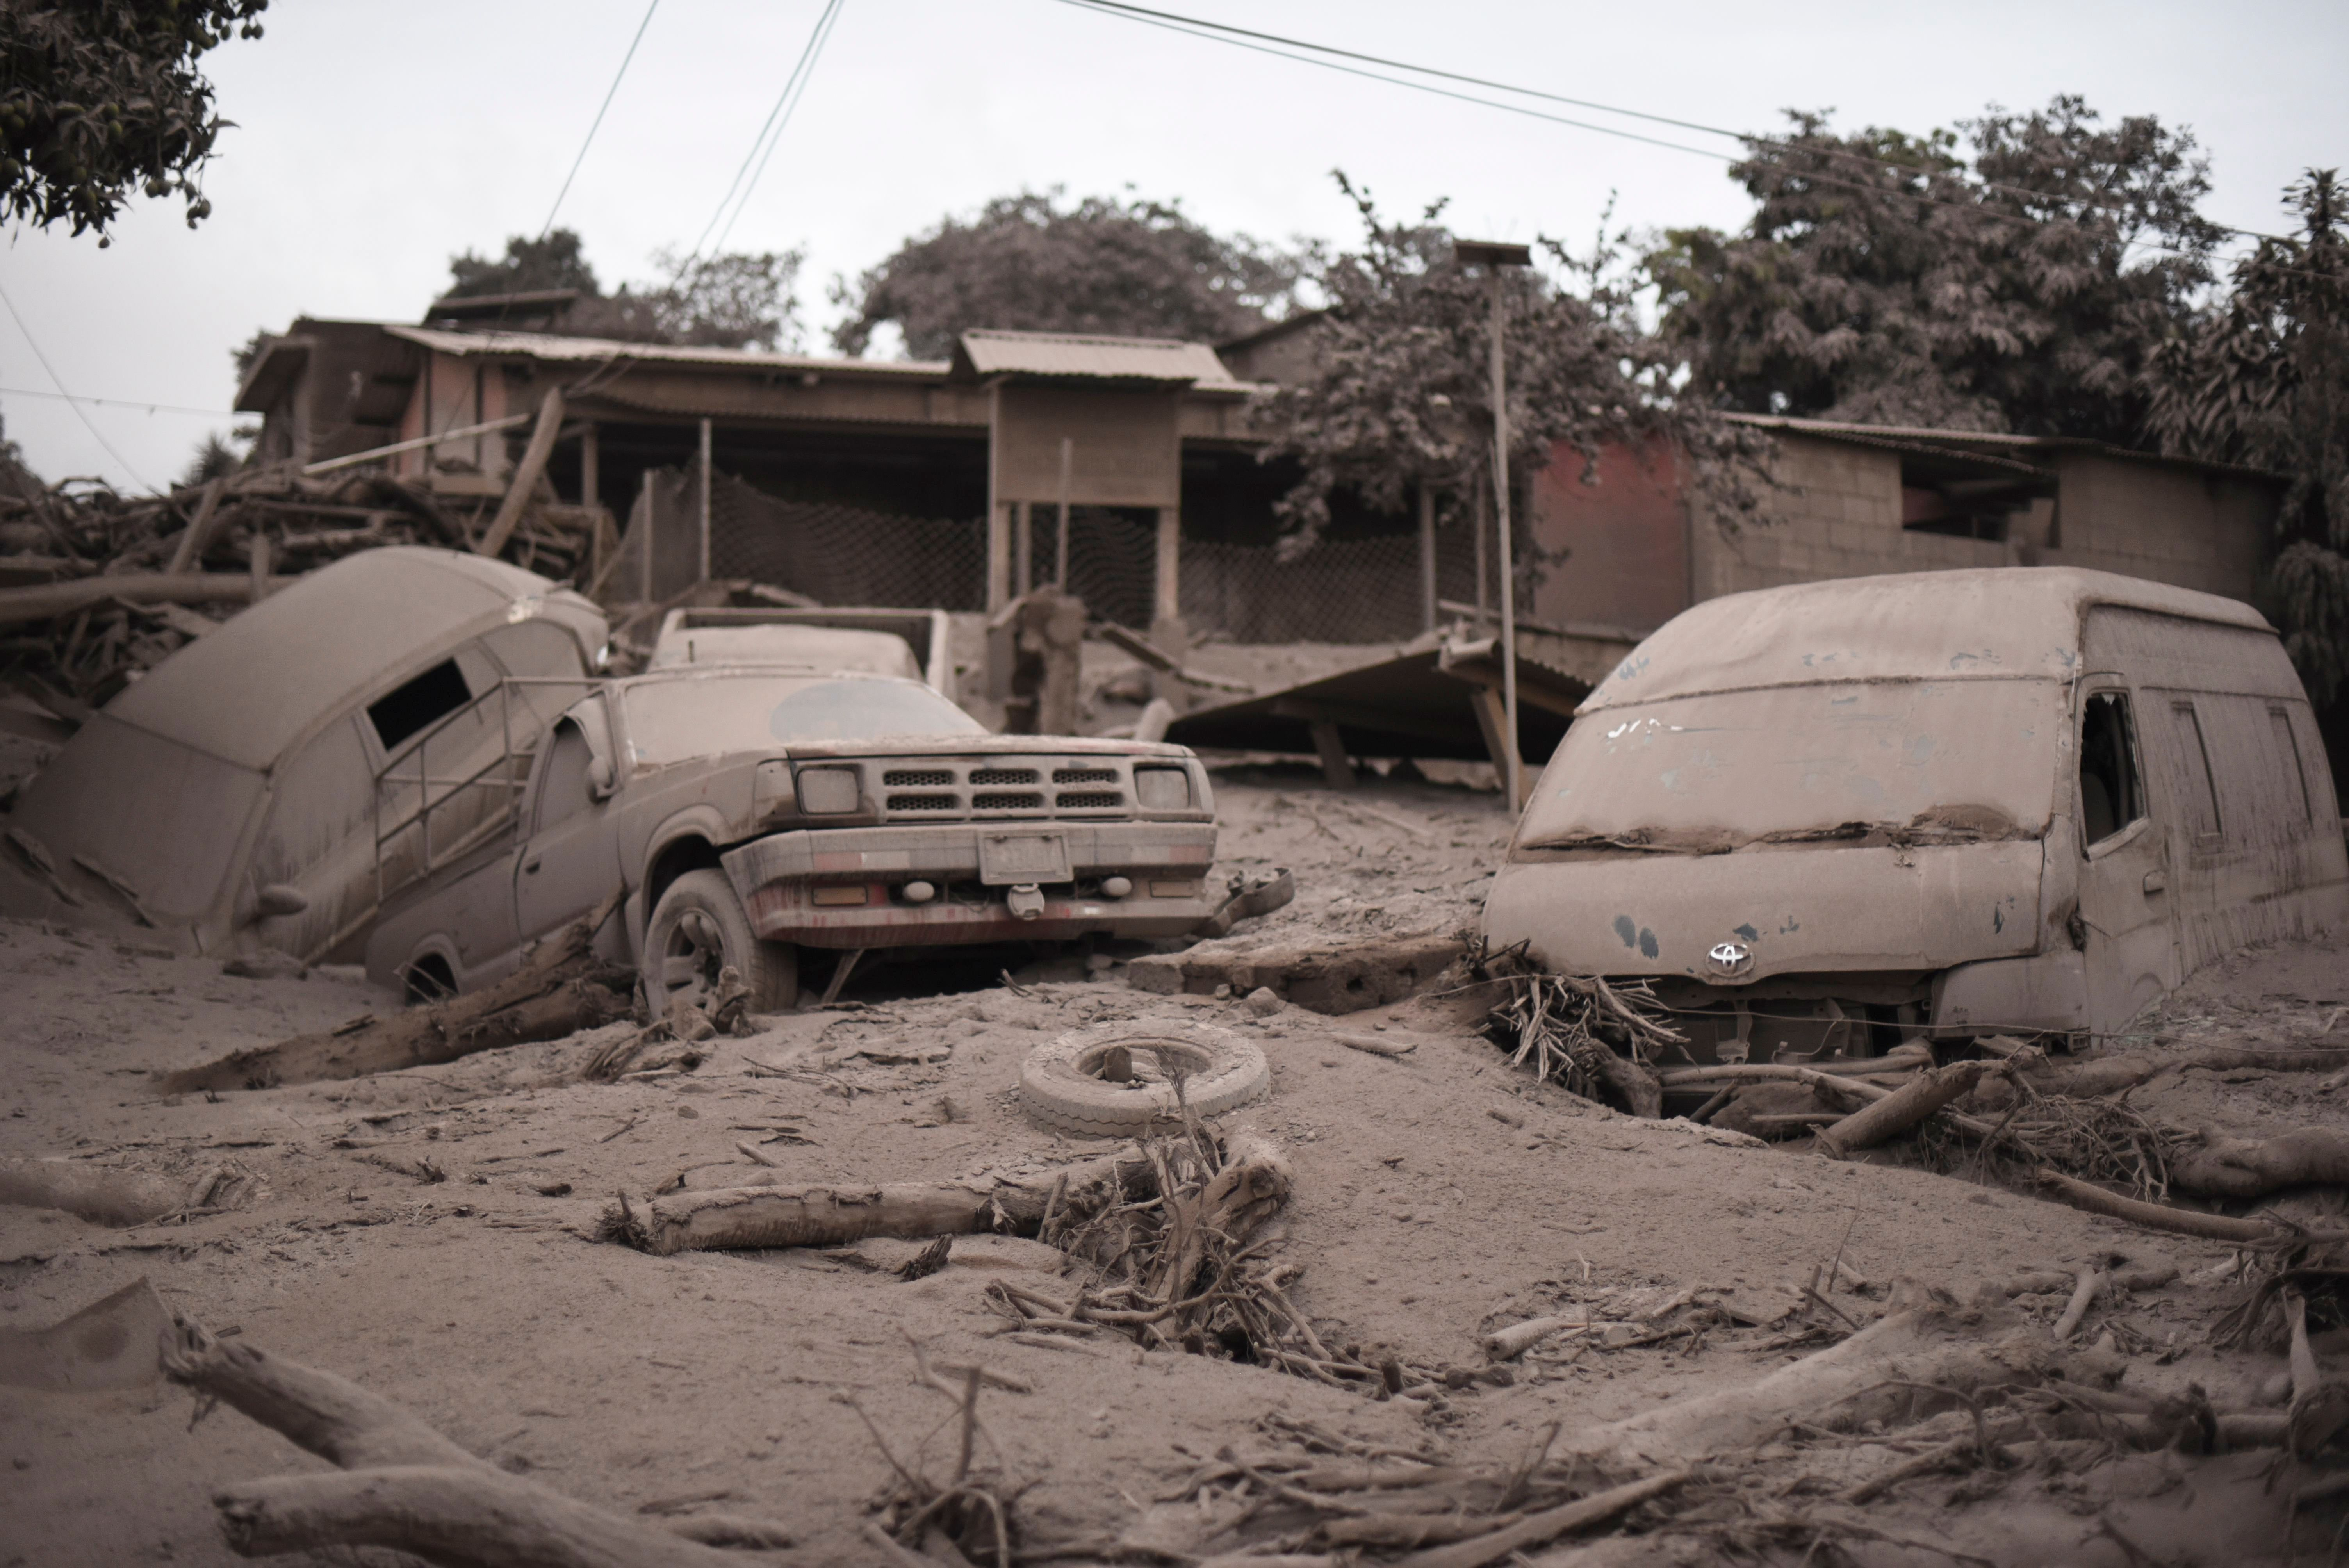 View of the damage casued by the eruption of the Fuego Volcano in San Miguel Los Lotes, a village in Escuintla Department, about 35 km southwest of Guatemala City, on June 4, 2018.